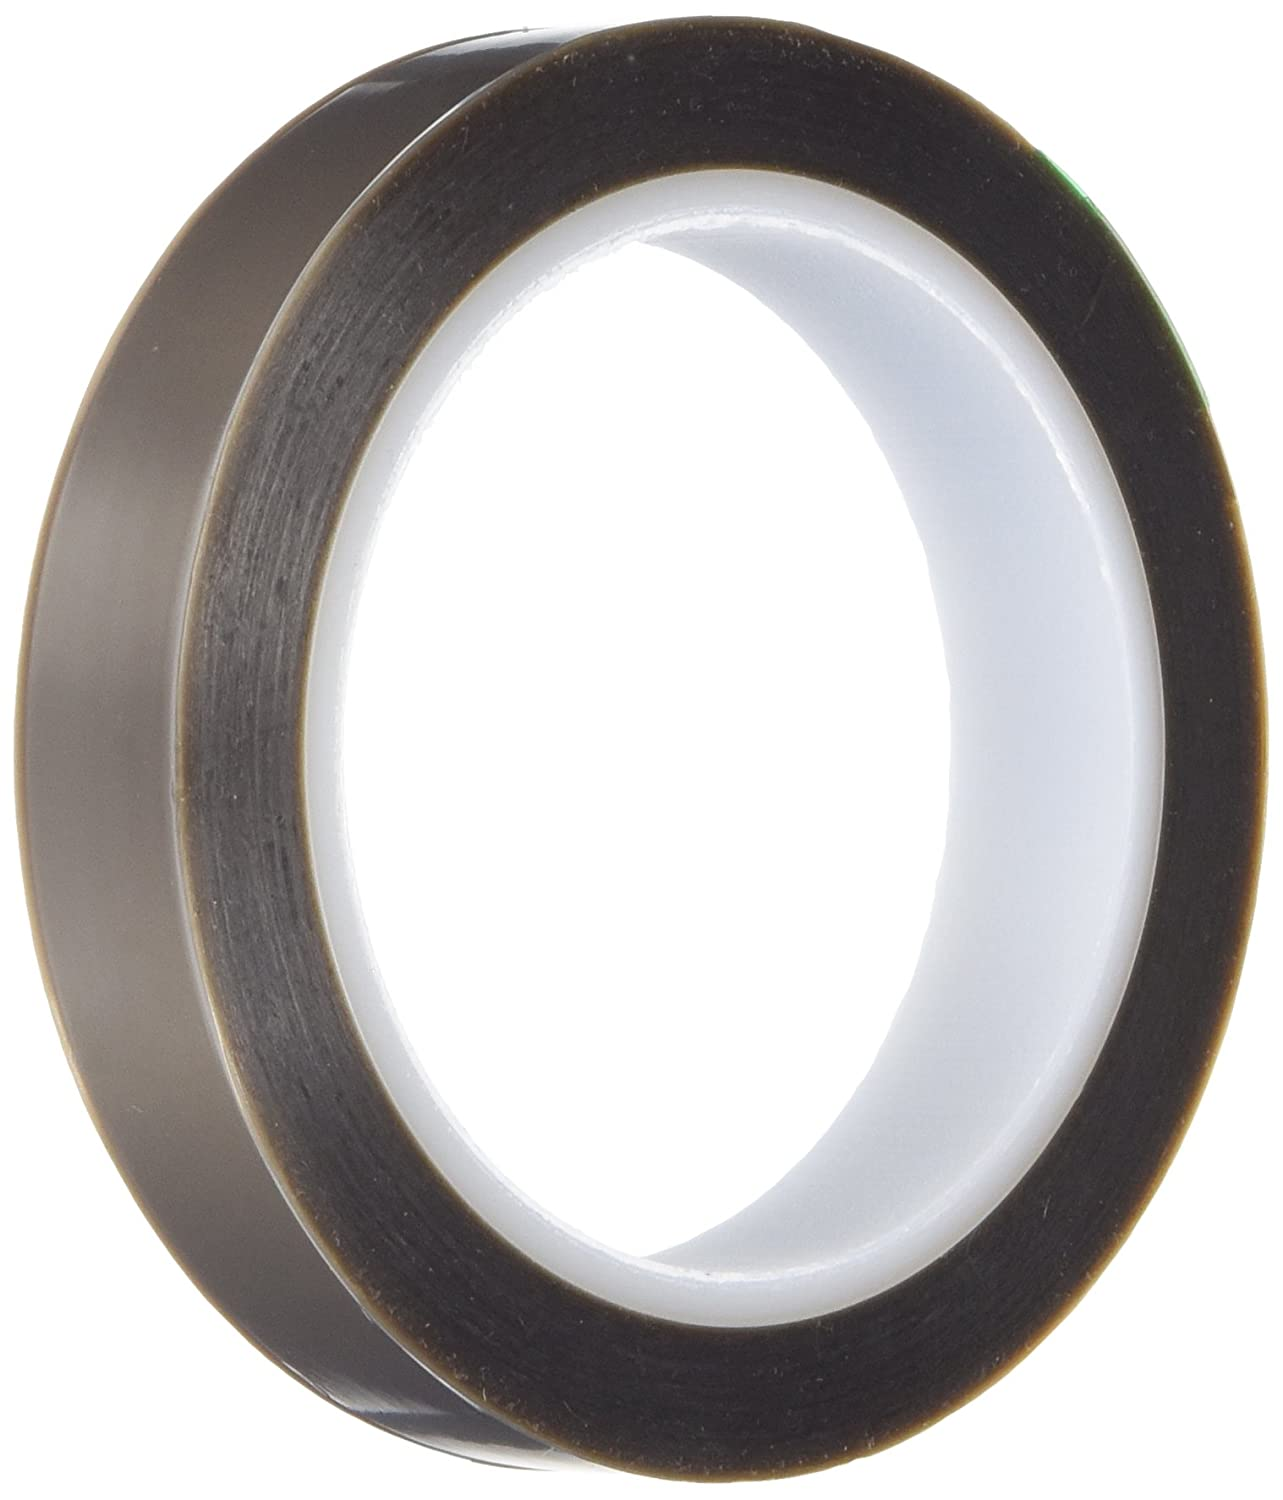 CS Hyde 15-2HD PTFE Film with Silicone Adhesive, 0.75' x 36 Yards